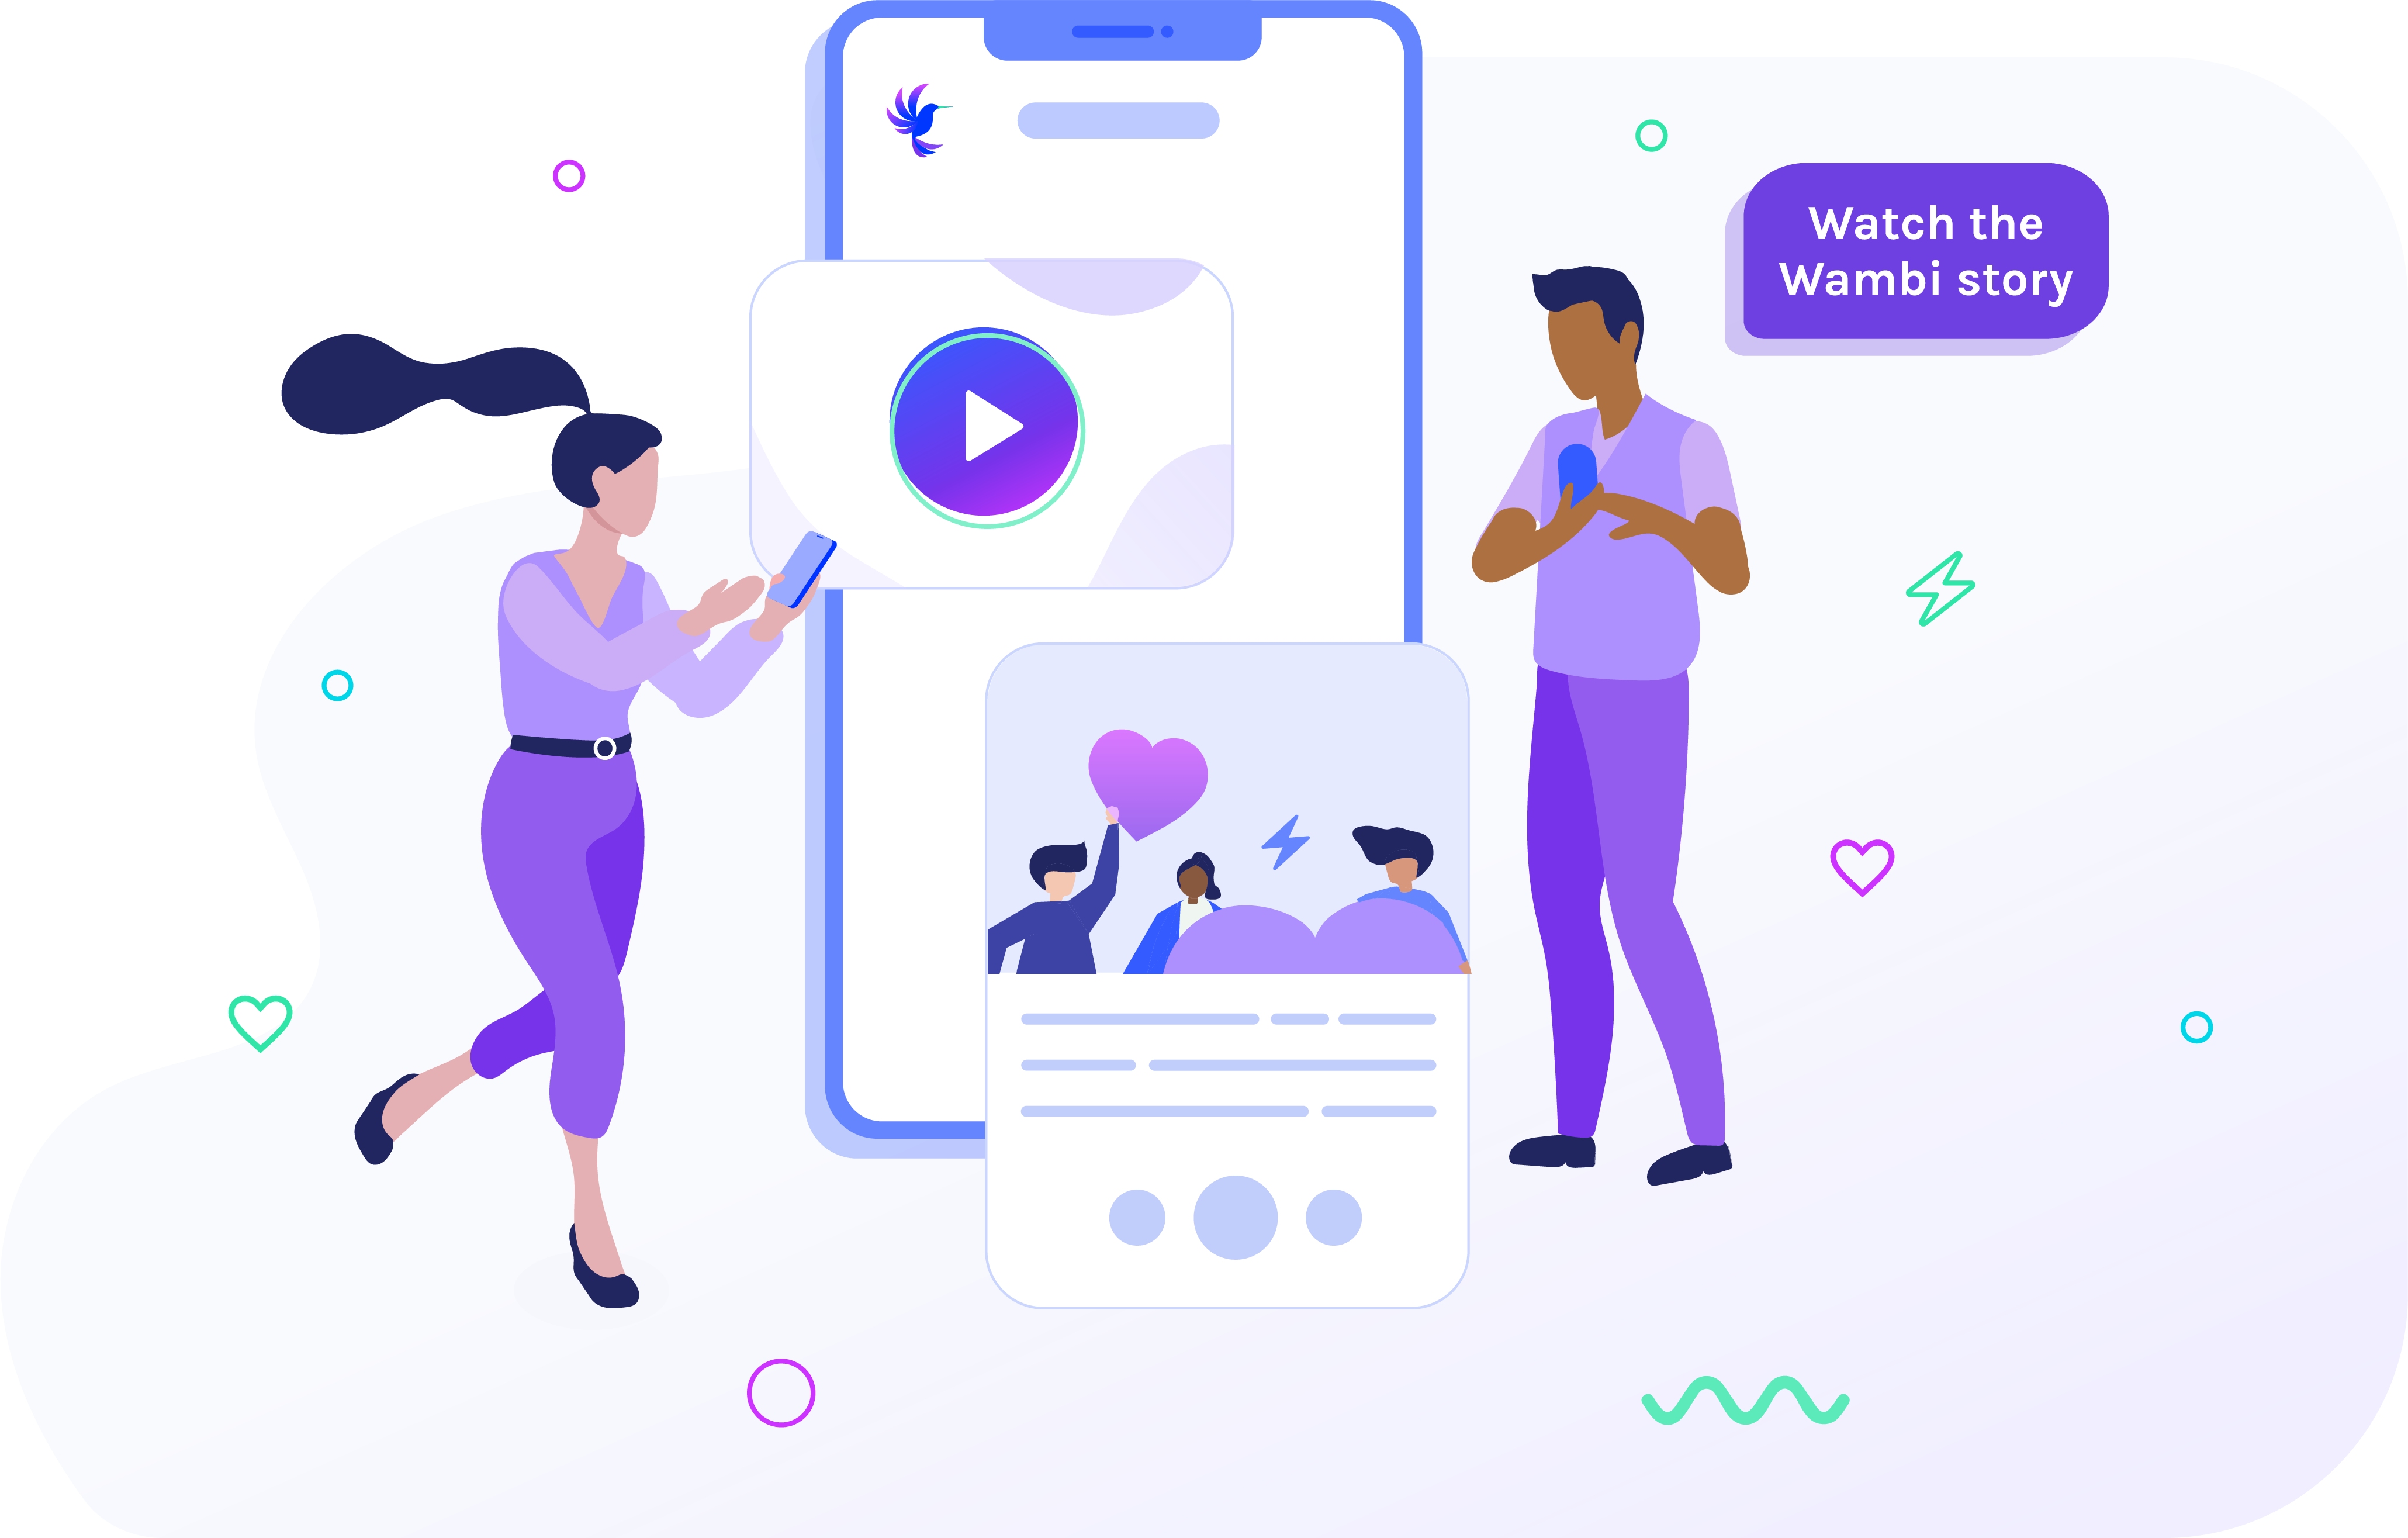 Wambi is an employee recognition platform created by Alex Coren